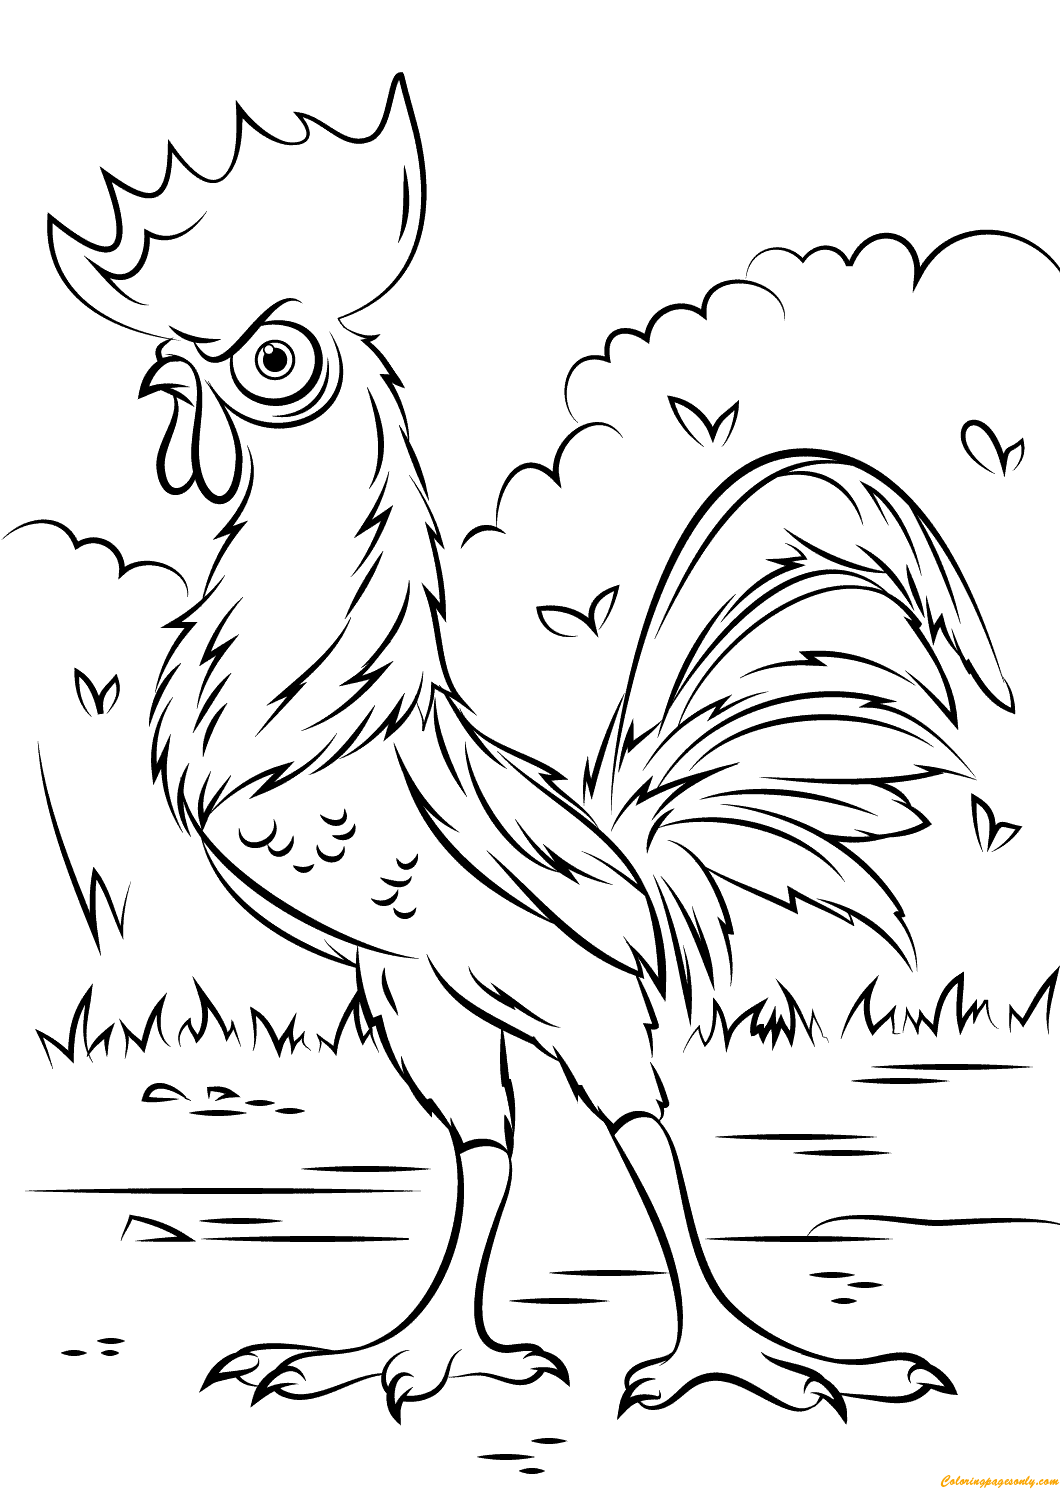 Heihei Rooster From Moana Disney Coloring Page